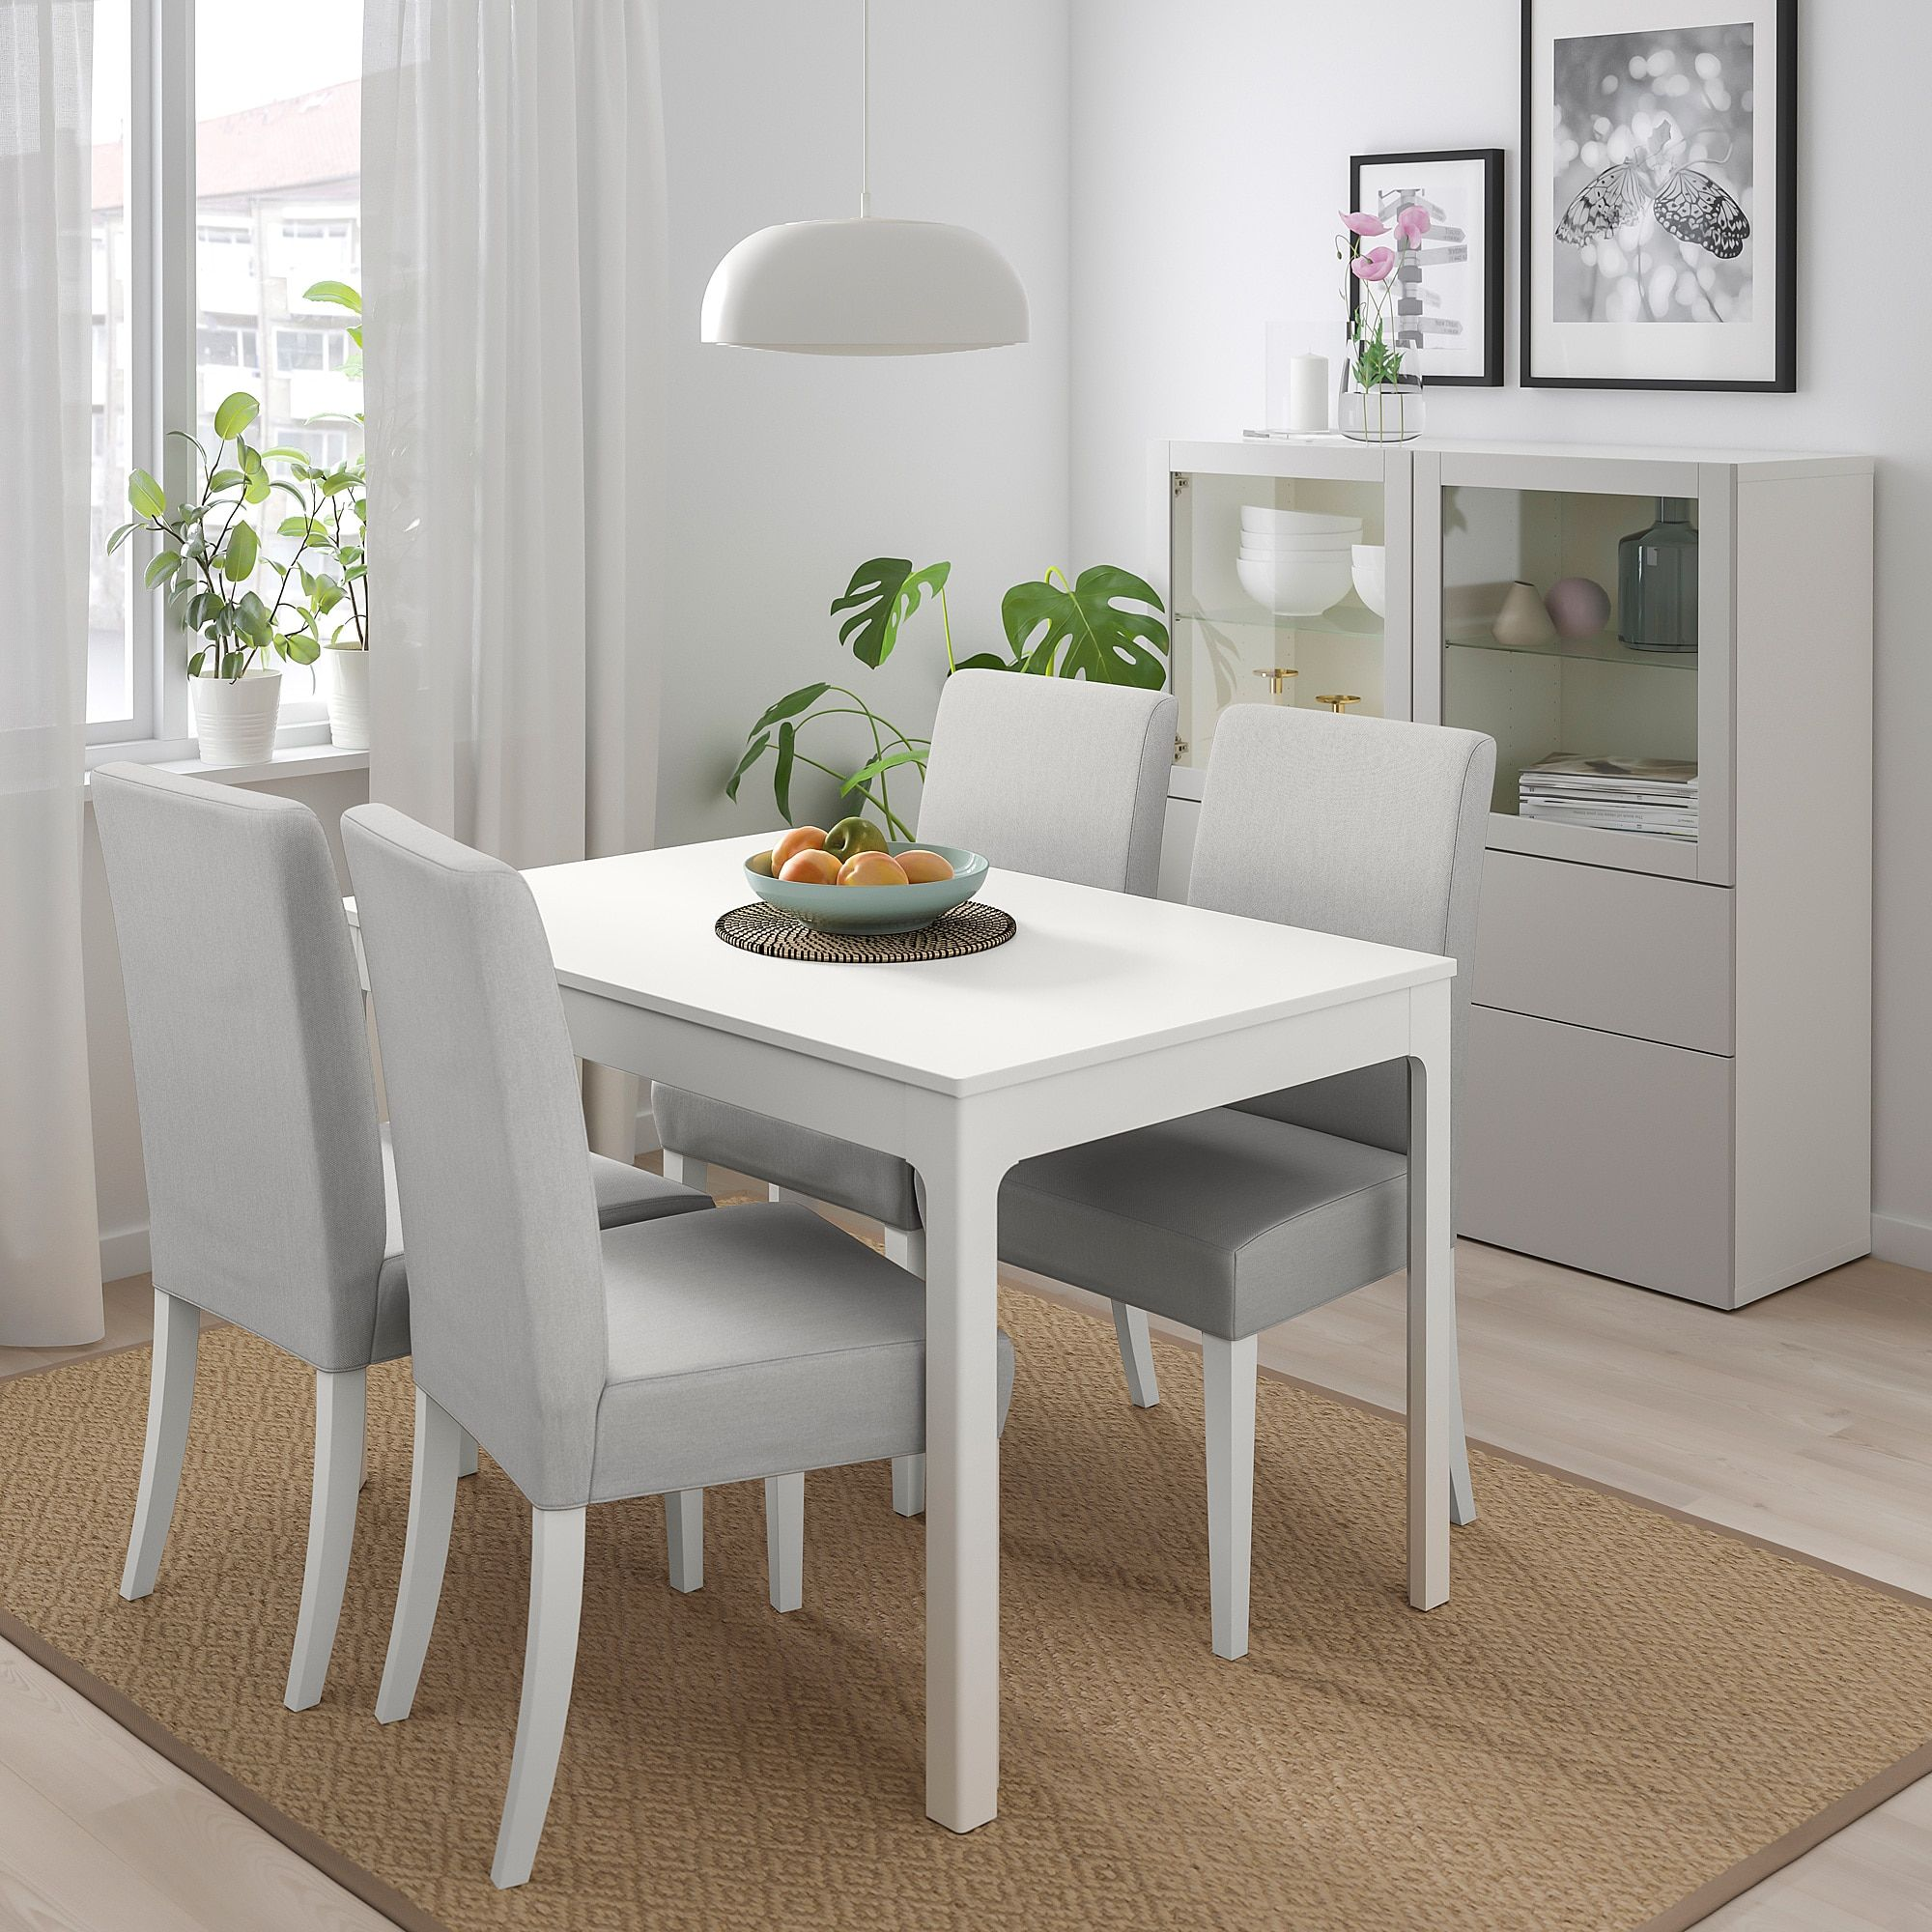 Ikea Ekedalen Henriksdal Table Et 4 Chaises Blanc Orrsta Gris White Dining Table Table And Chairs Dining Room Small